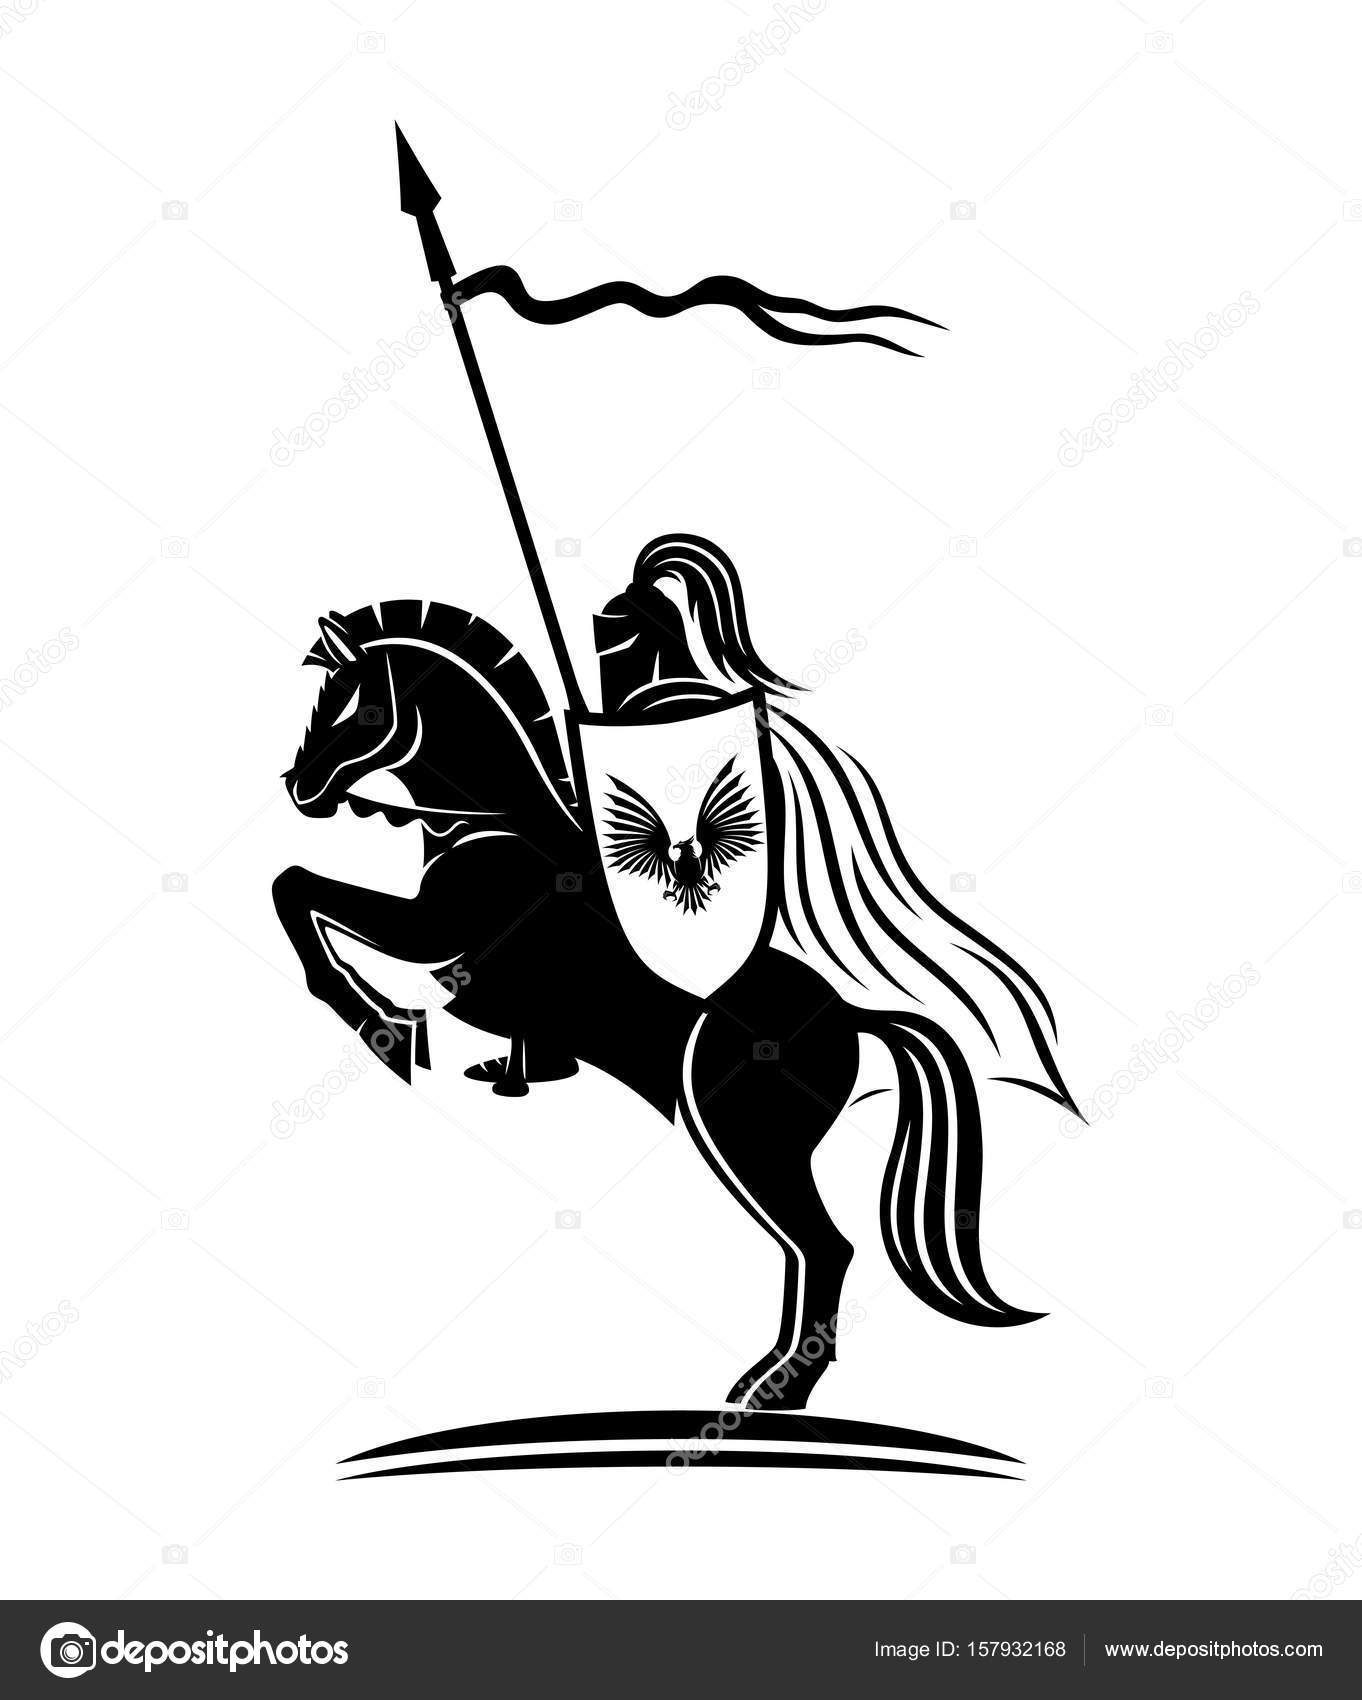 knight on a horse knight medieval warrior free image on pixabay on knight horse a